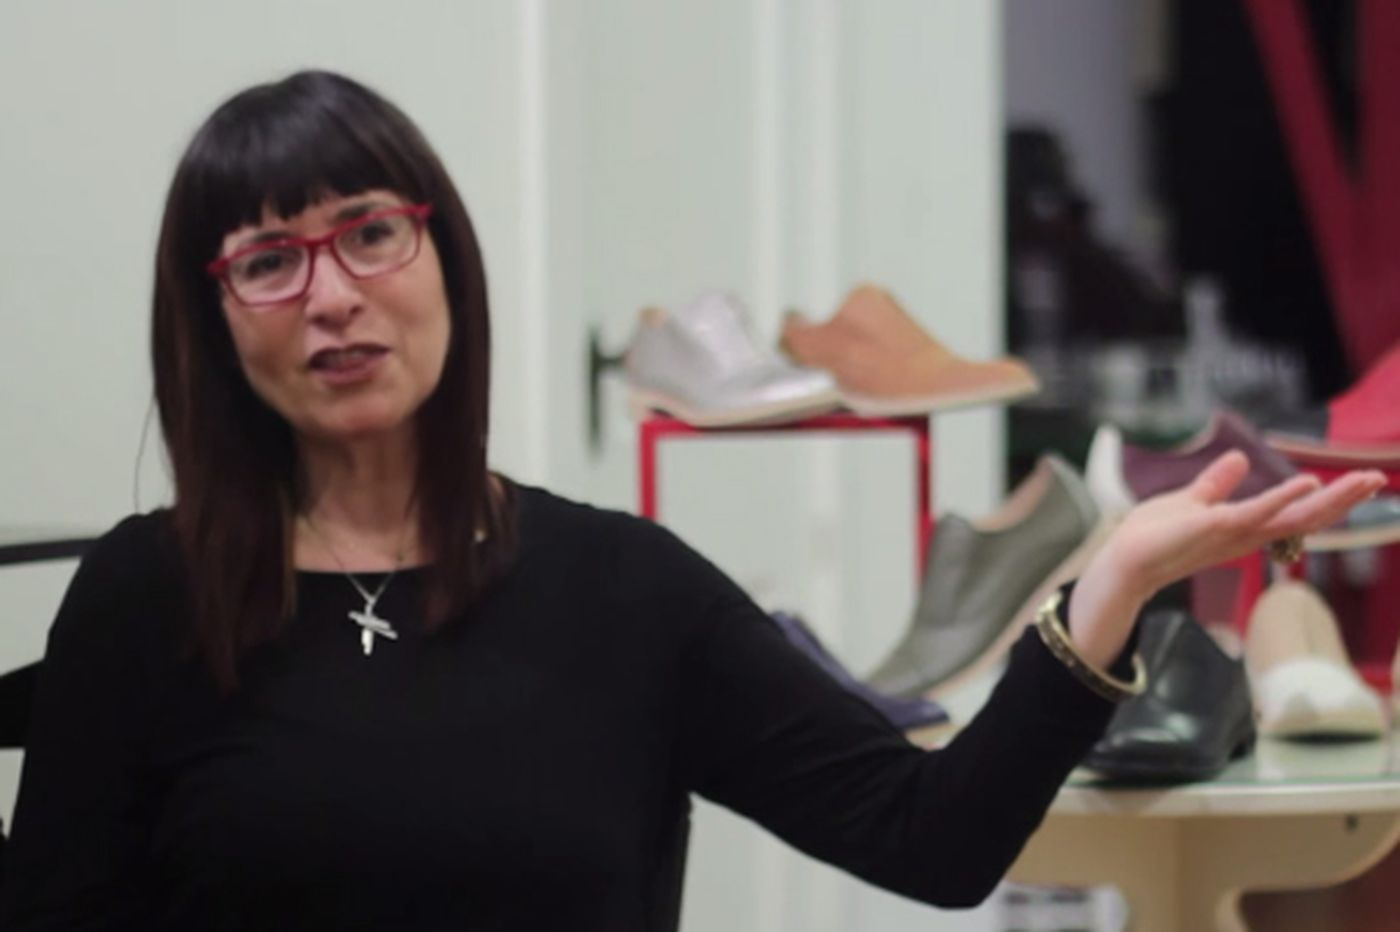 Mirror, Mirror: From shoe store owner to shoe designer